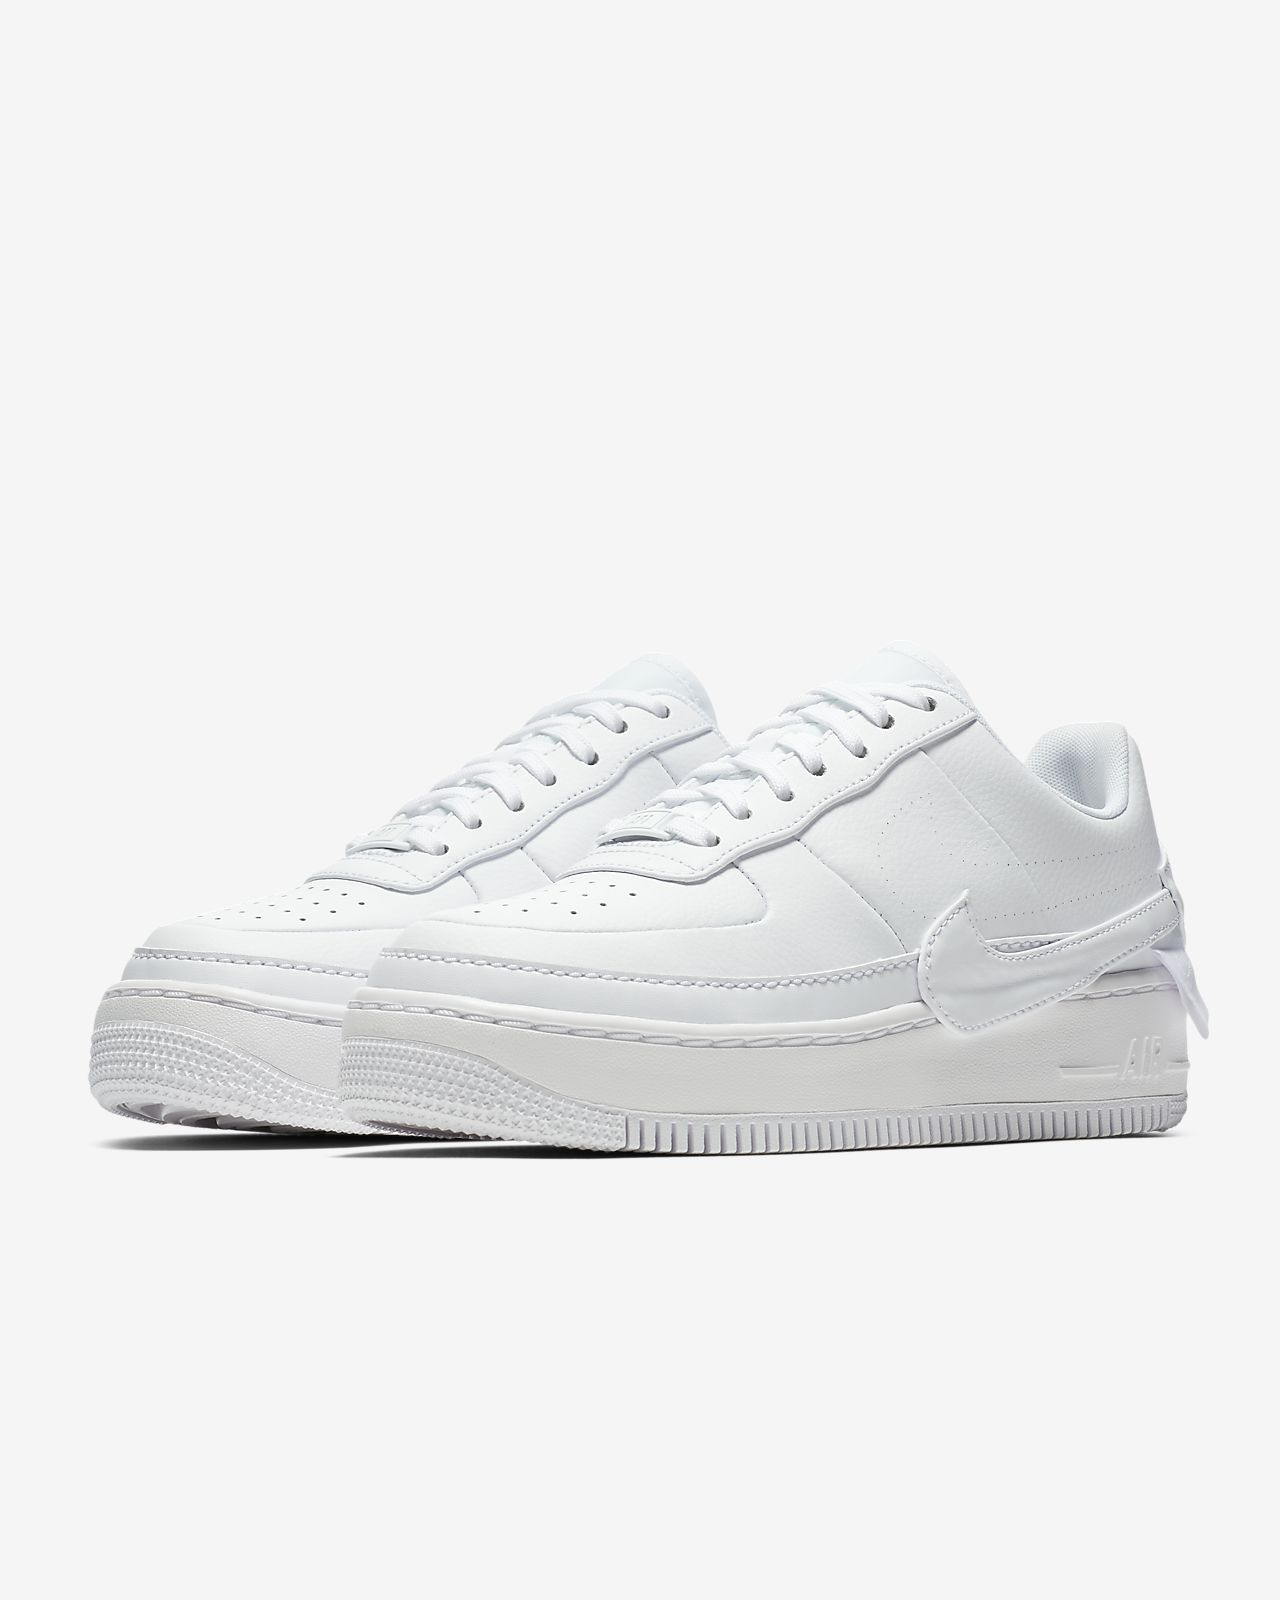 Details zu Nike Air Force 1 Jester XX Women Damen Schuhe Retro Freizeit Sneaker AO1220